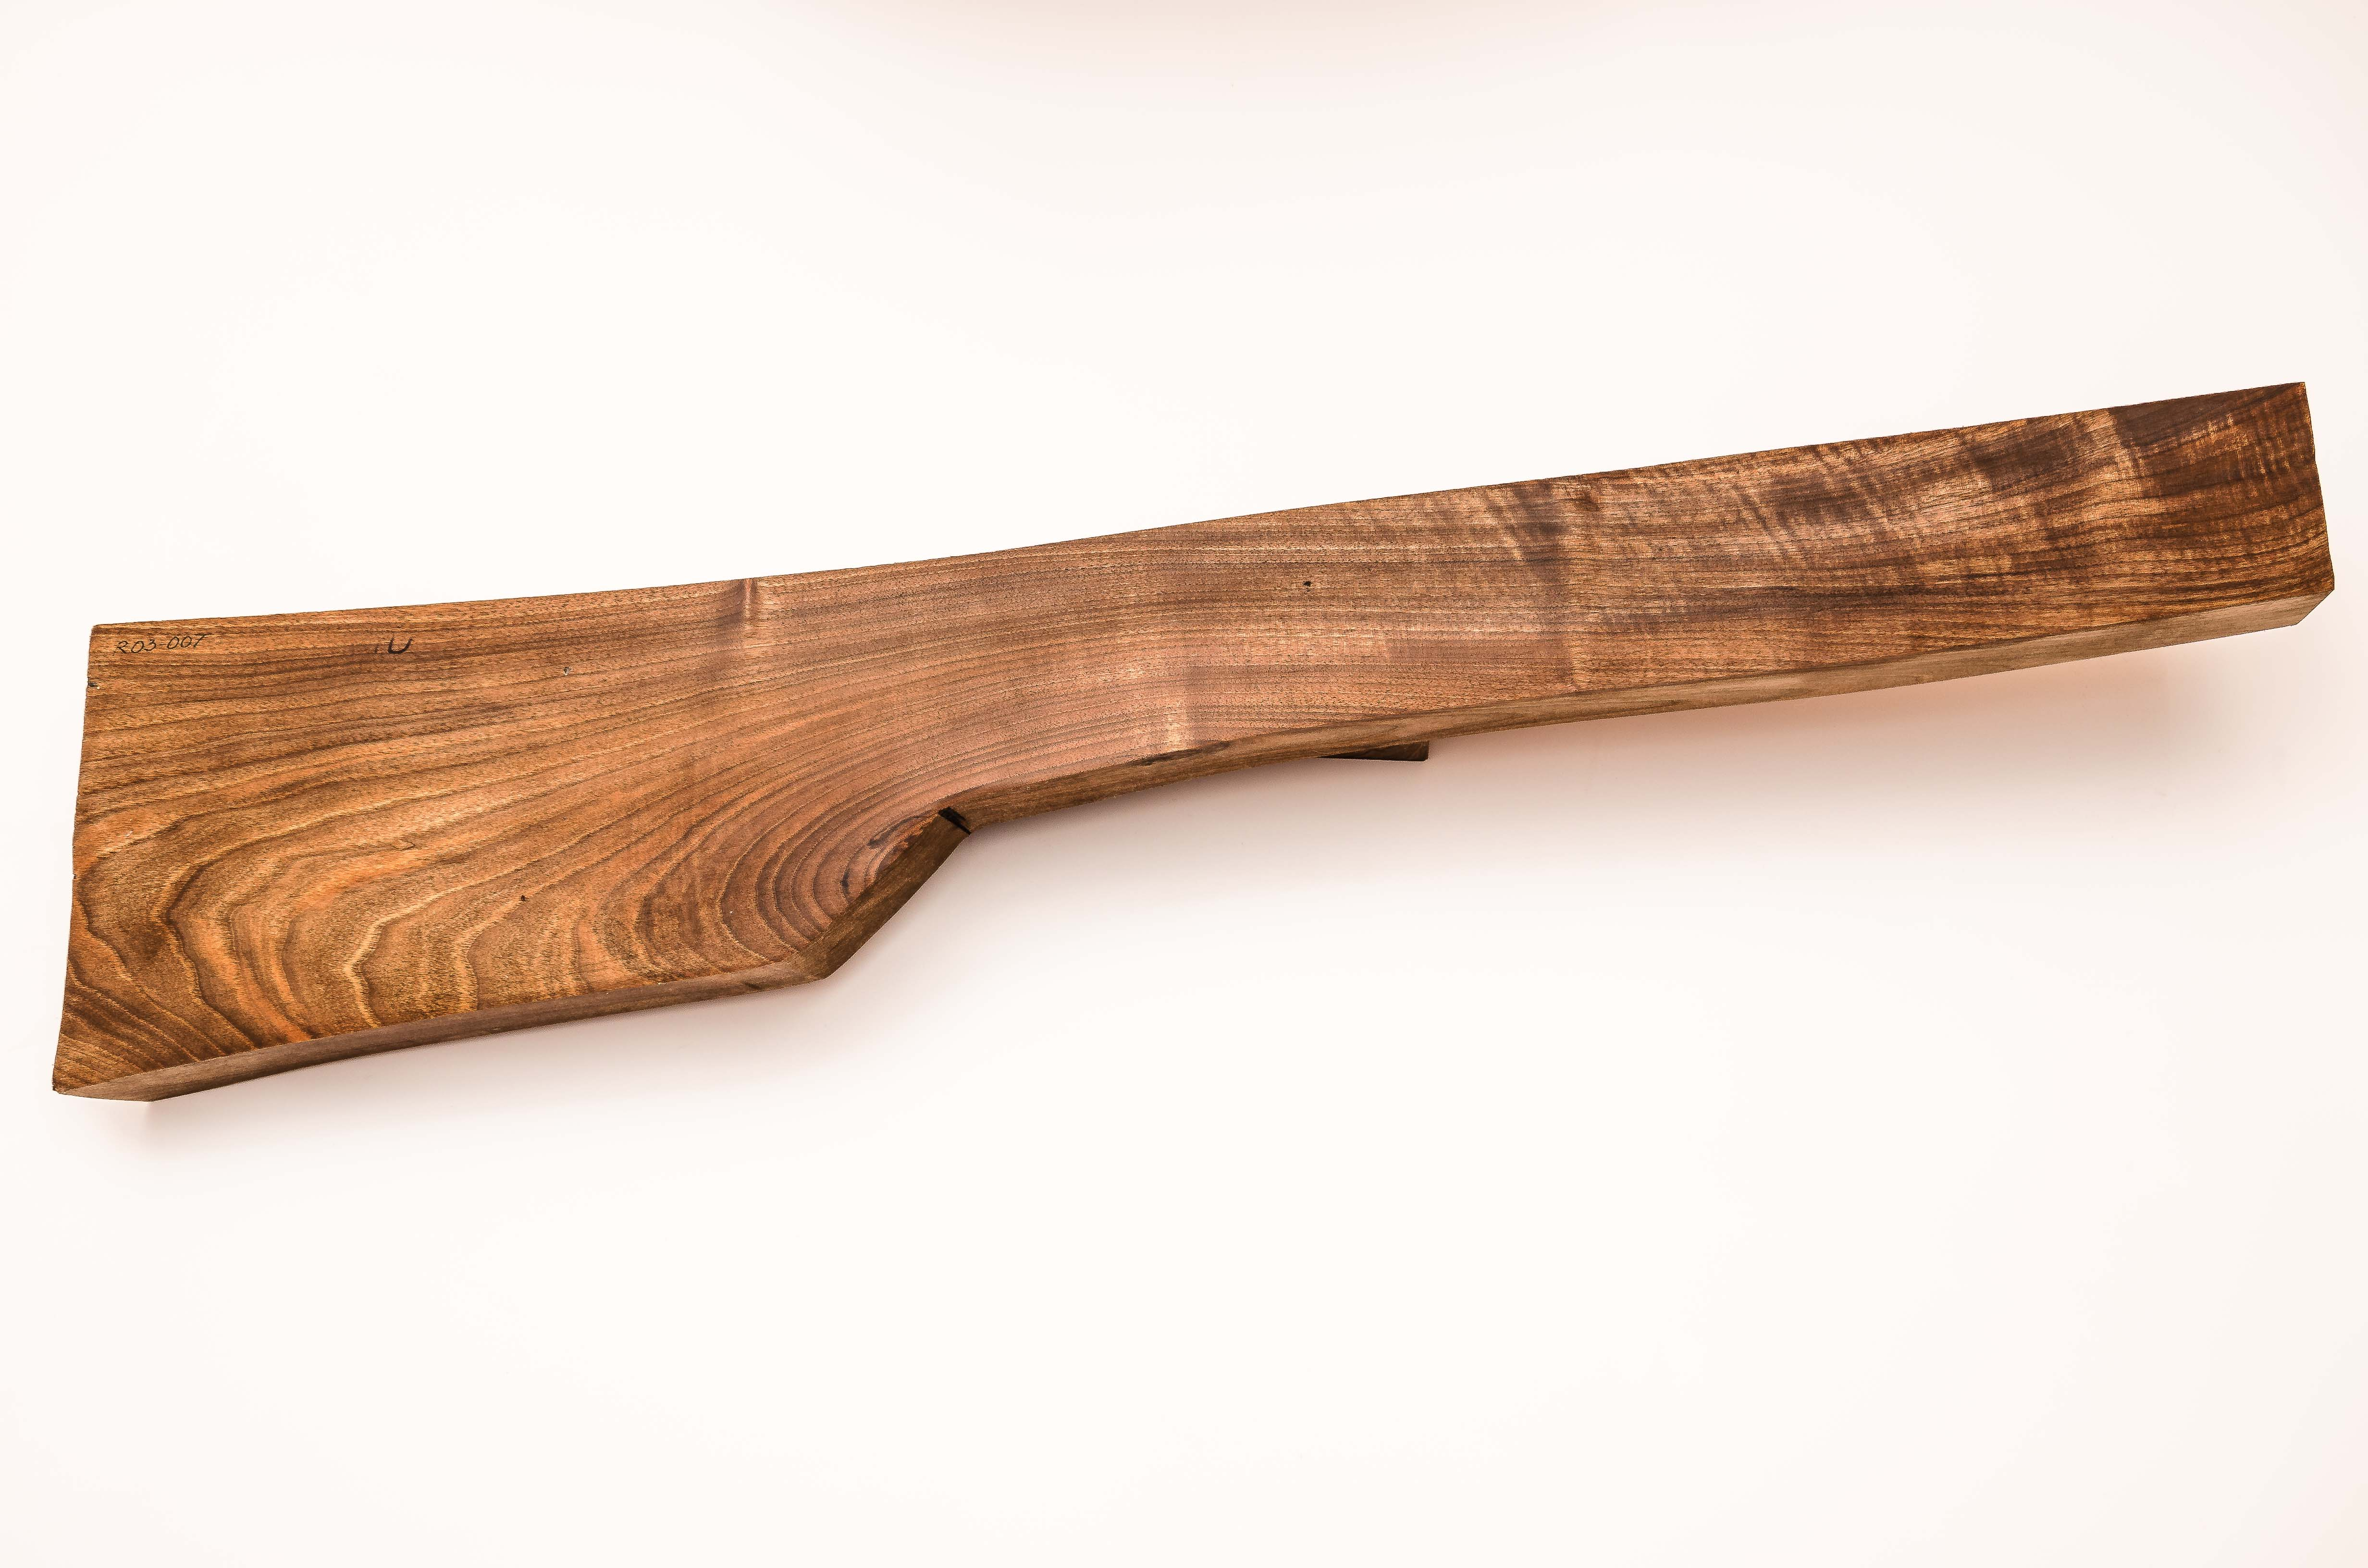 walnut_stock_blanks_for_guns_and_rifles (7 of 9)